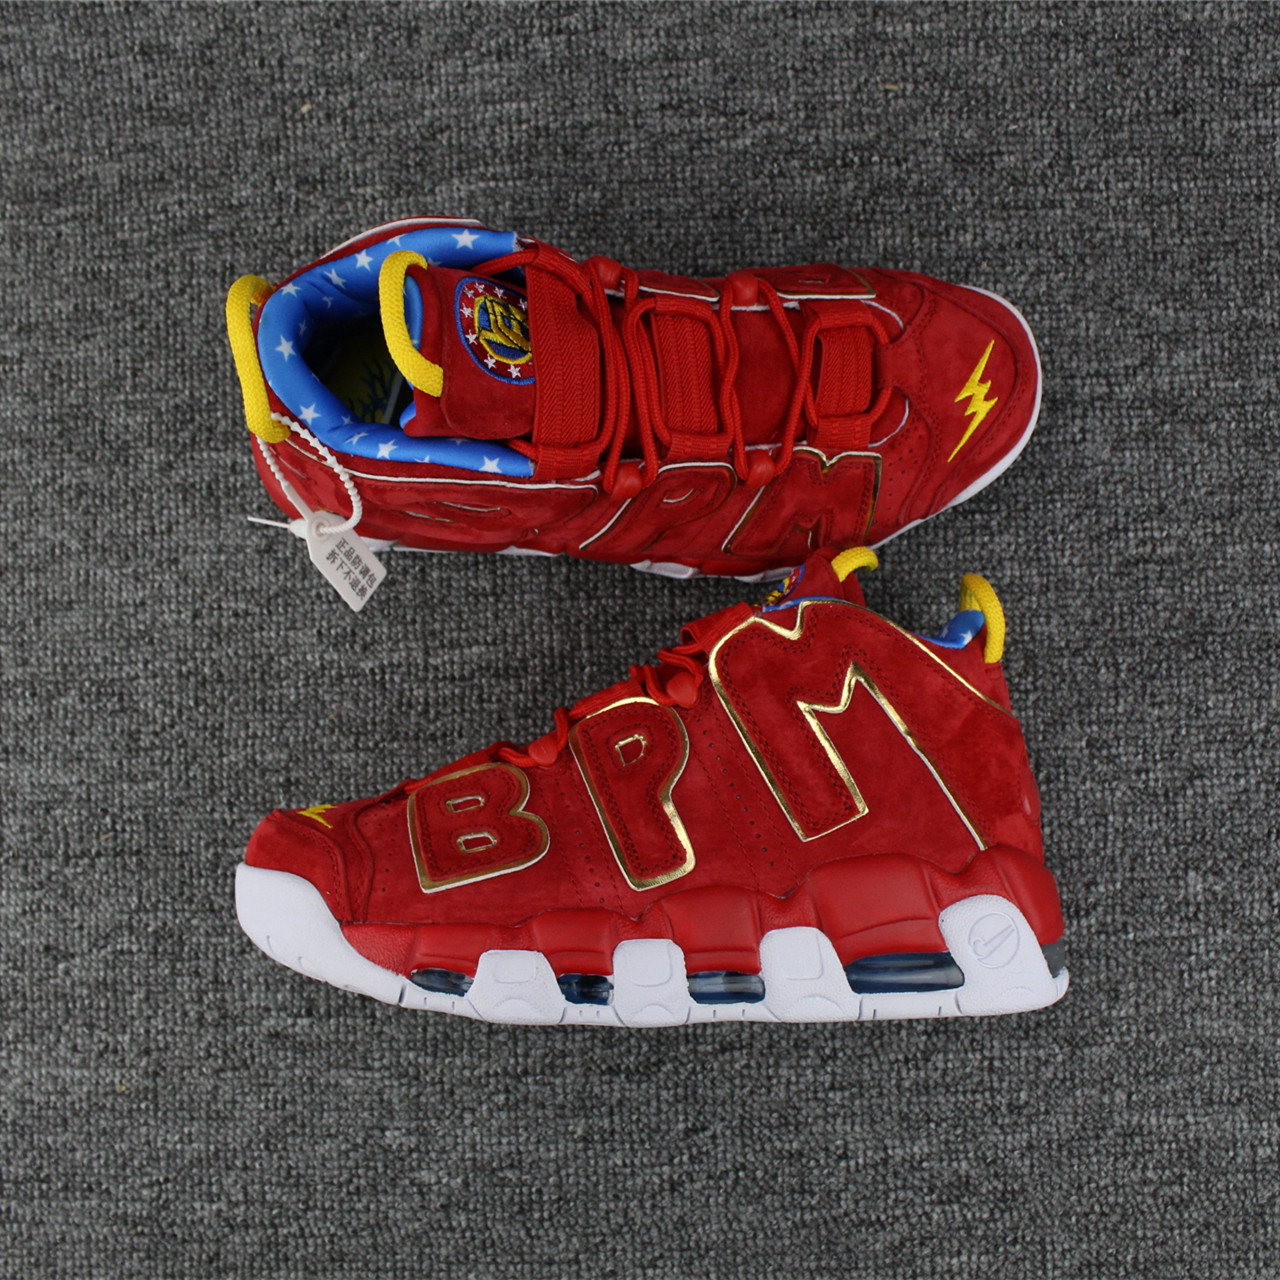 Men Nike Air More Uptempo Deer Skin Red Yellow Shoes